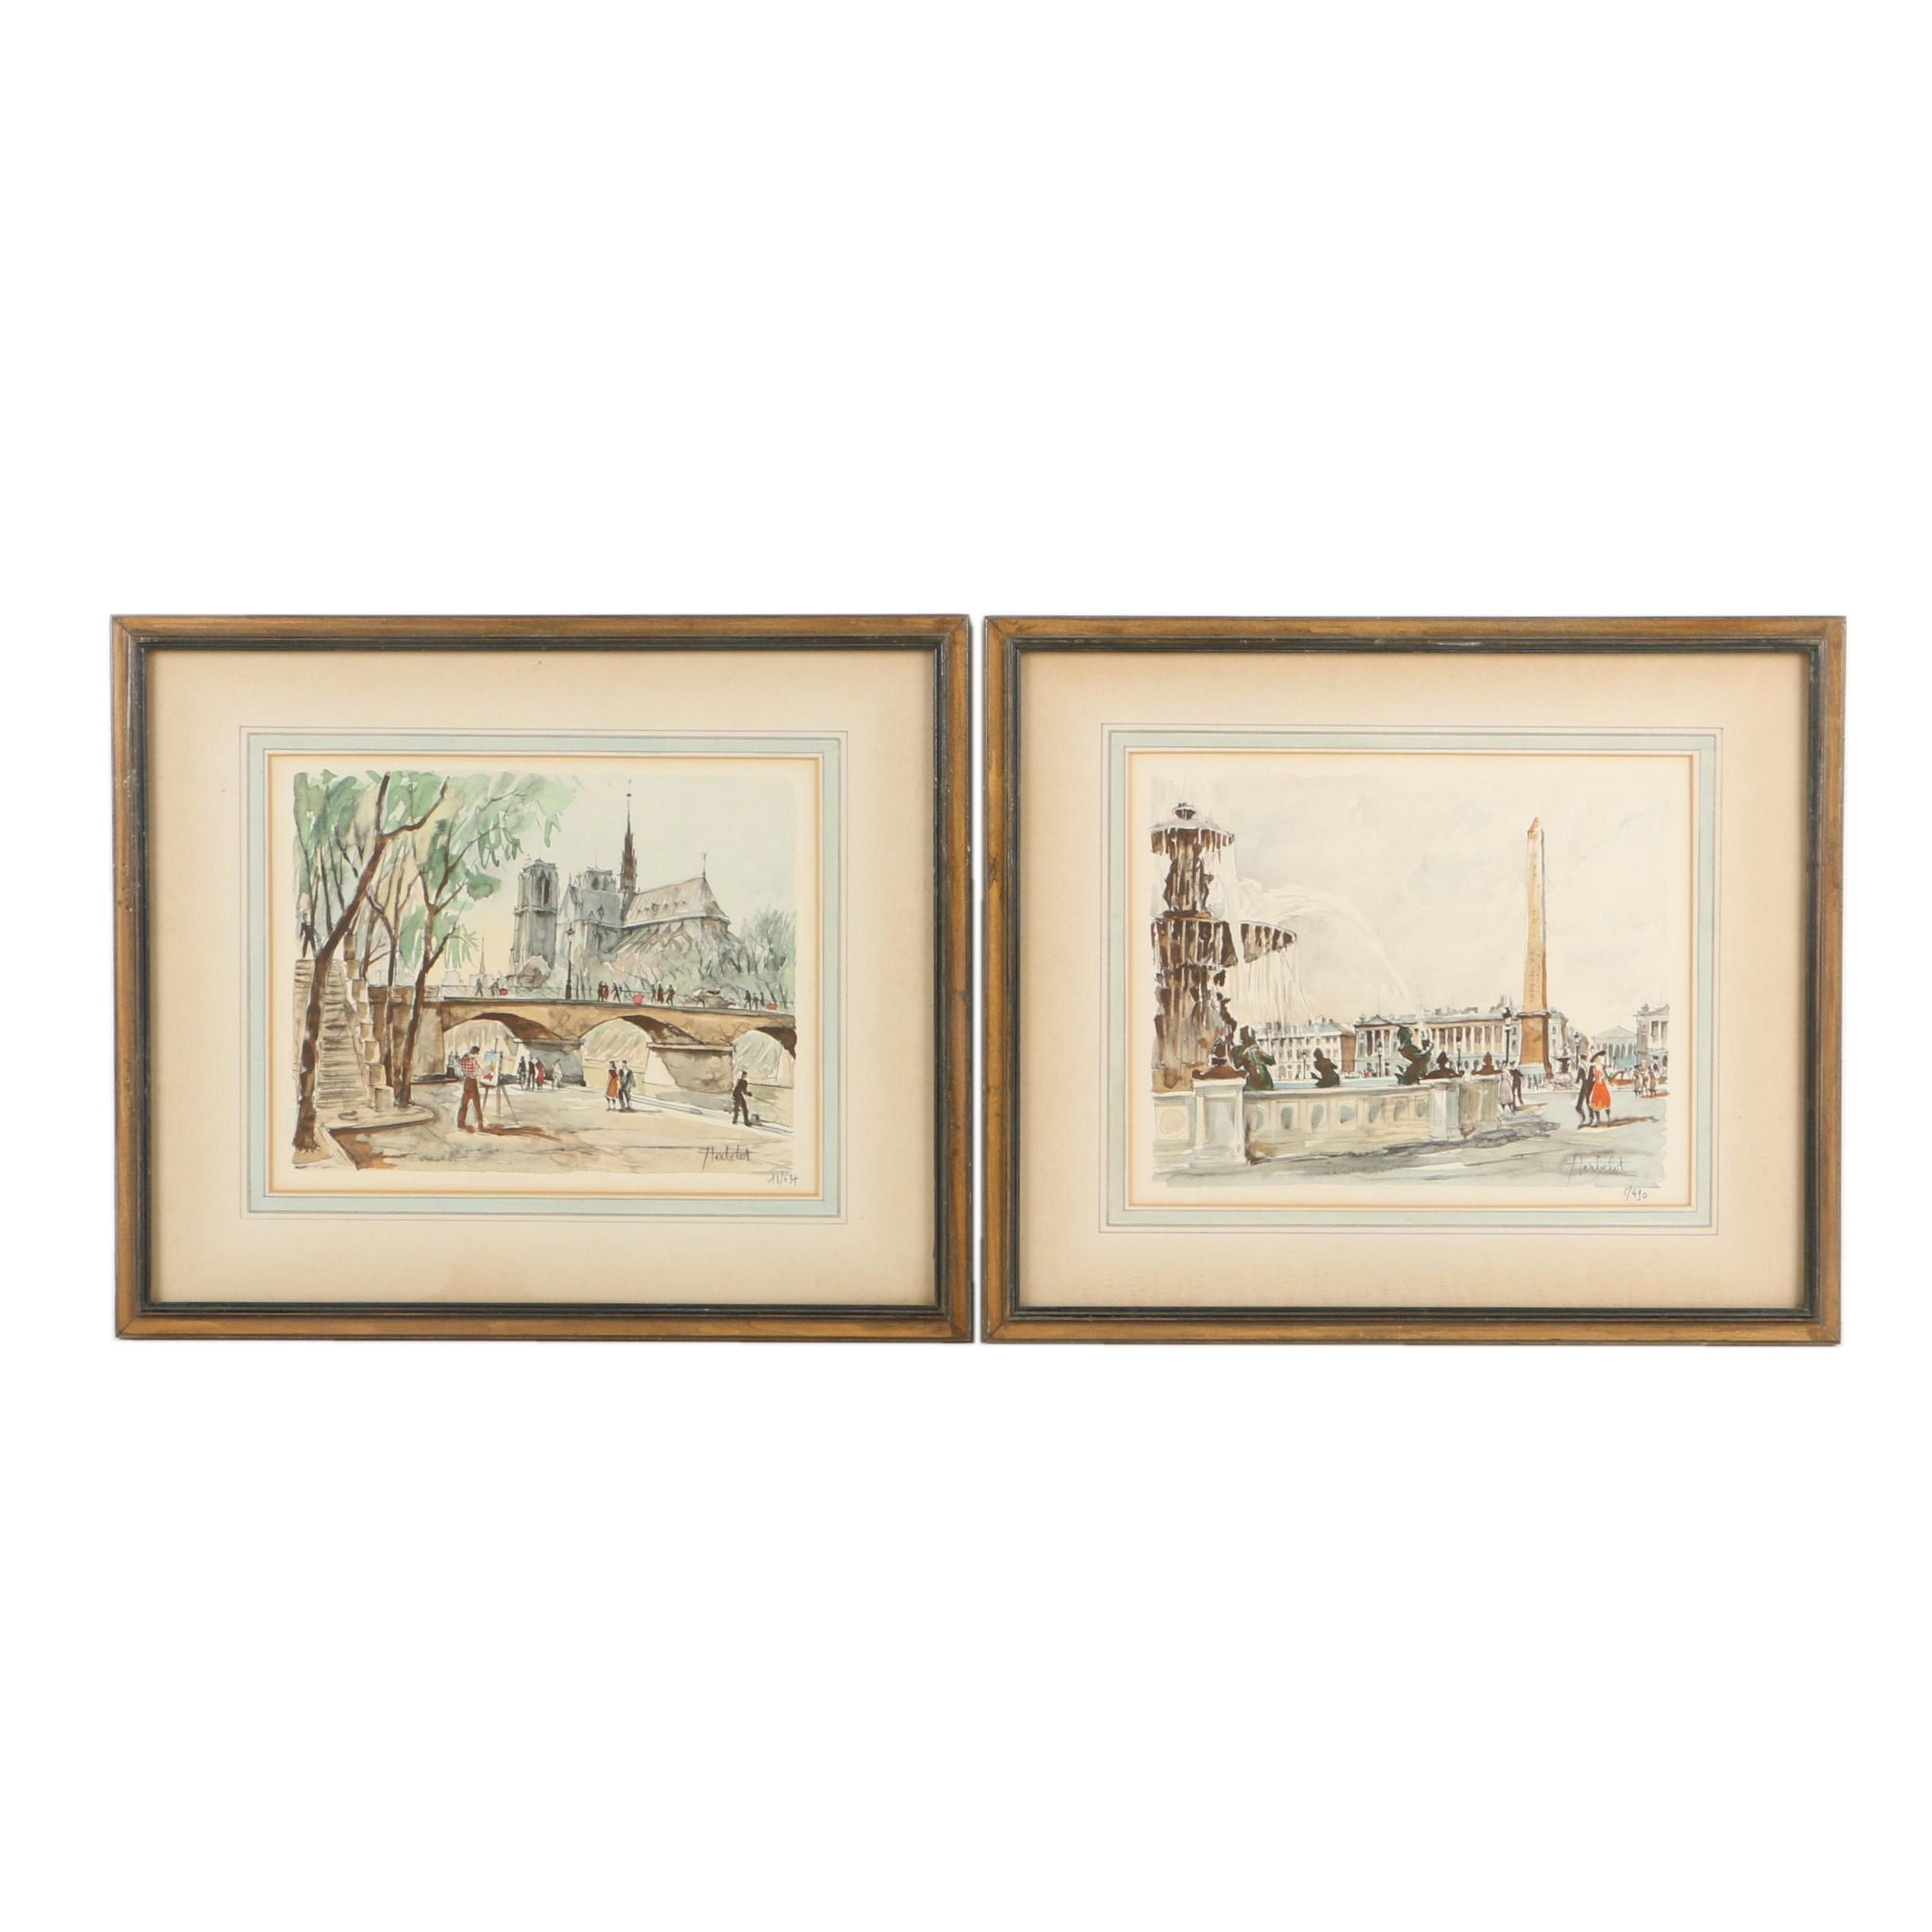 Herbelot Limited Edition Lithograph Prints of Paris Street Scenes